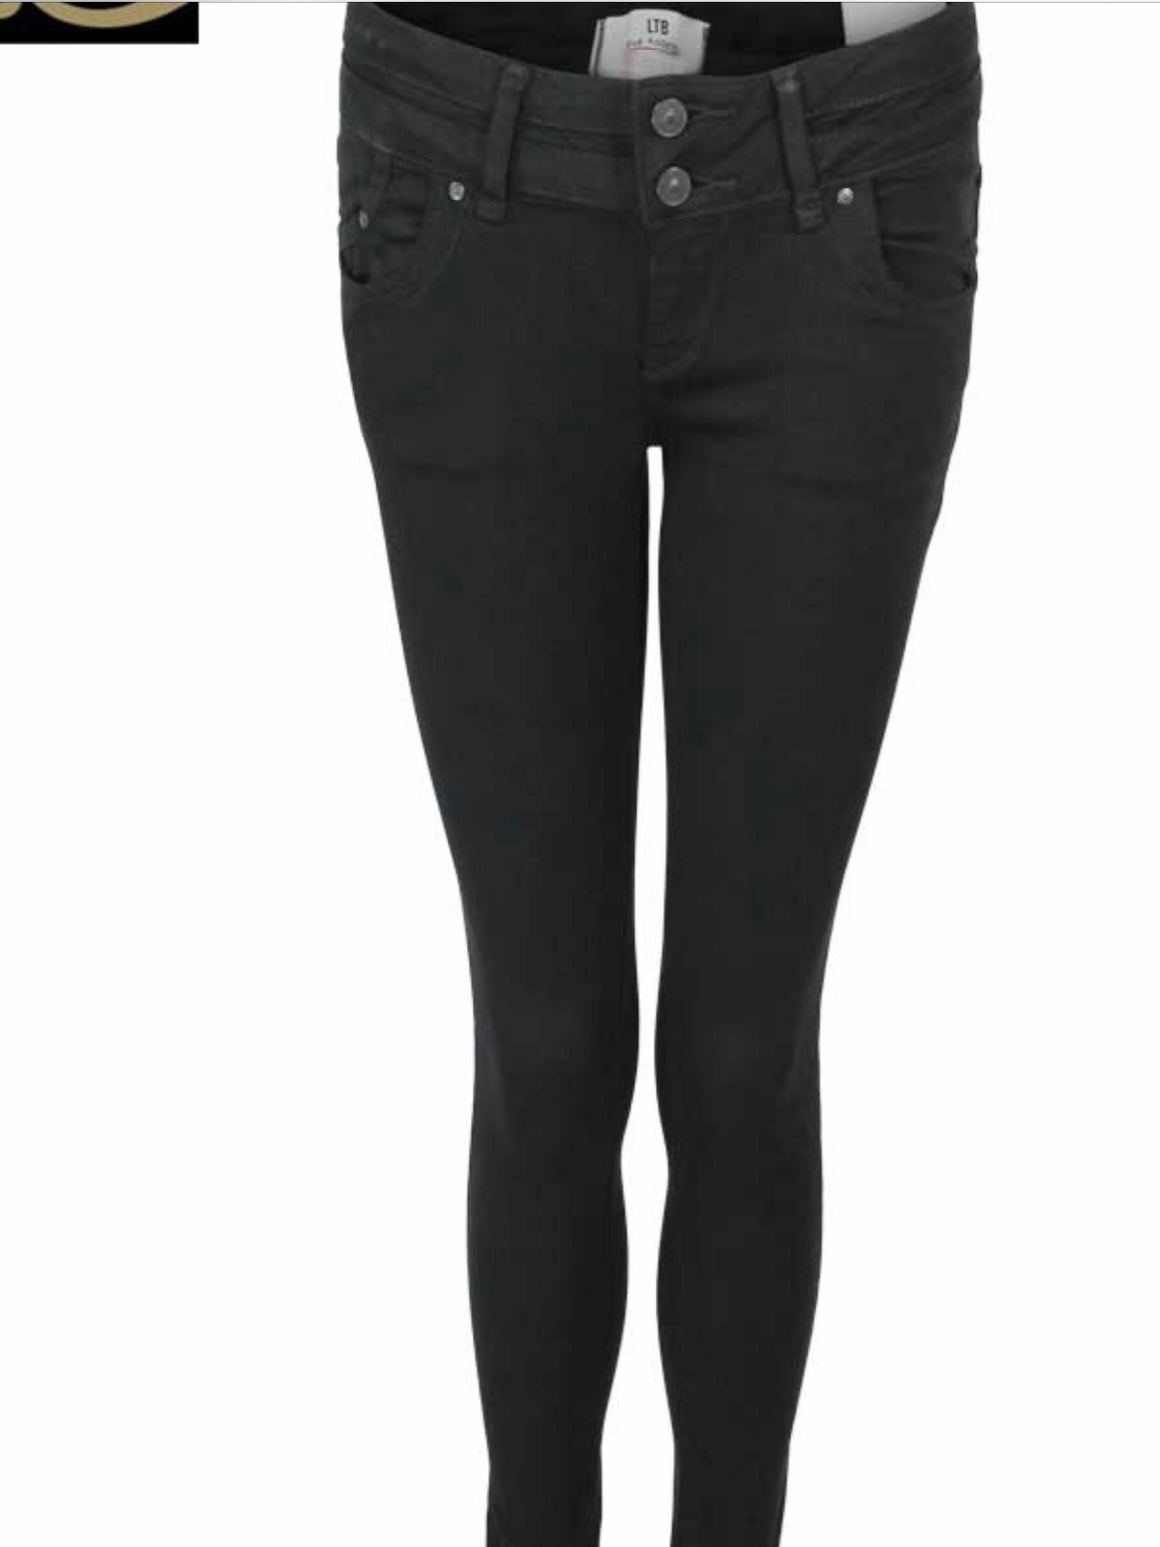 LTB Julita Jean-Black Wash